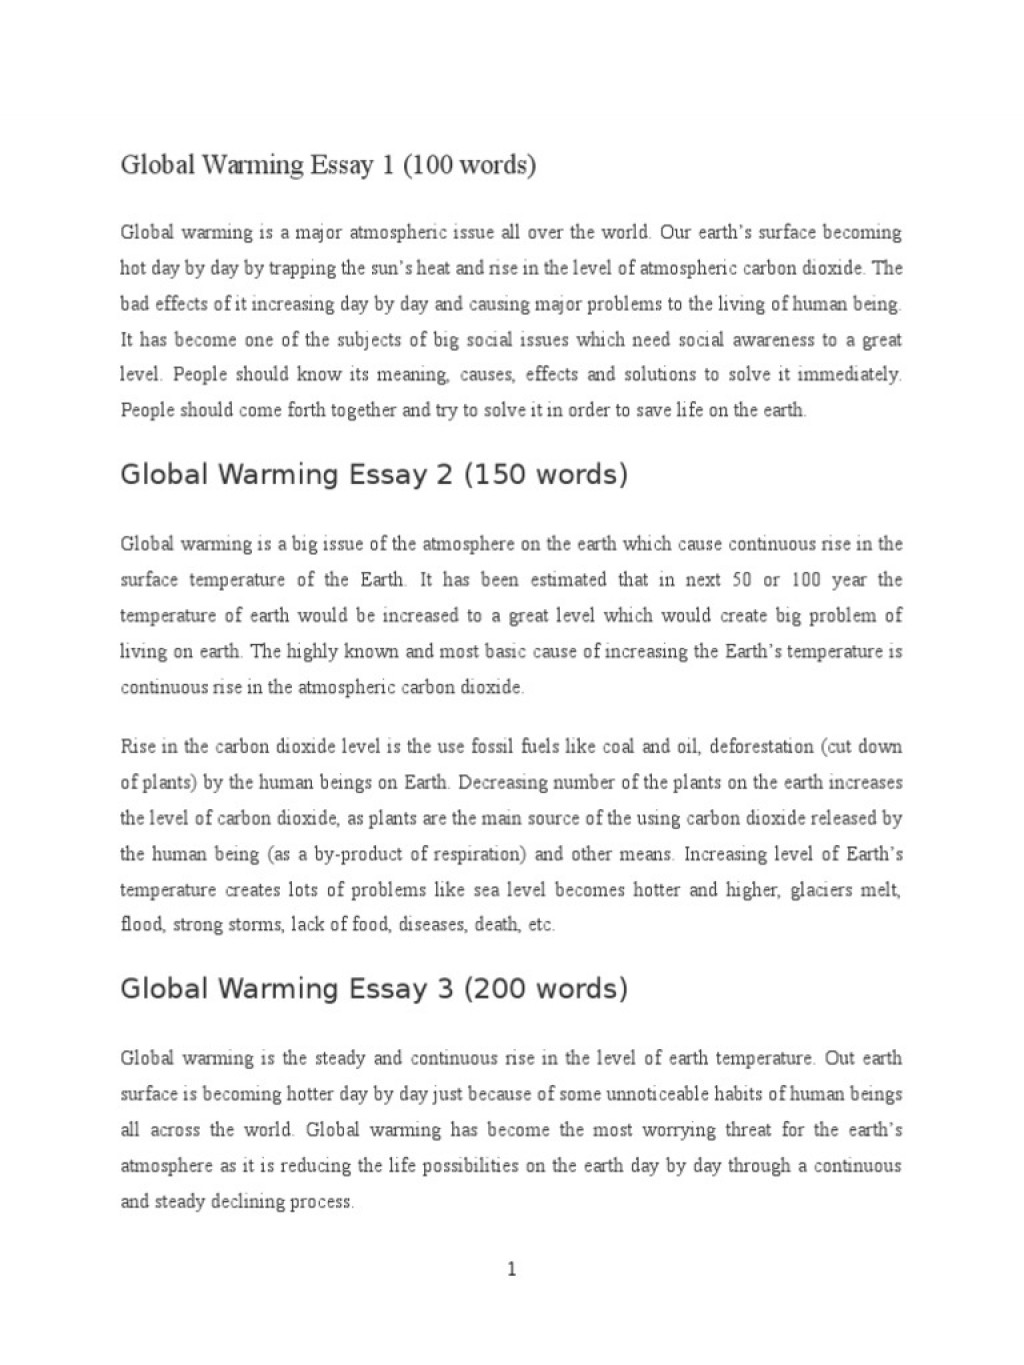 008 Global Warming Essay 1 5882e593b6d87f85288b46ba Unusual Persuasive Thesis Free Research Paper Topics Large